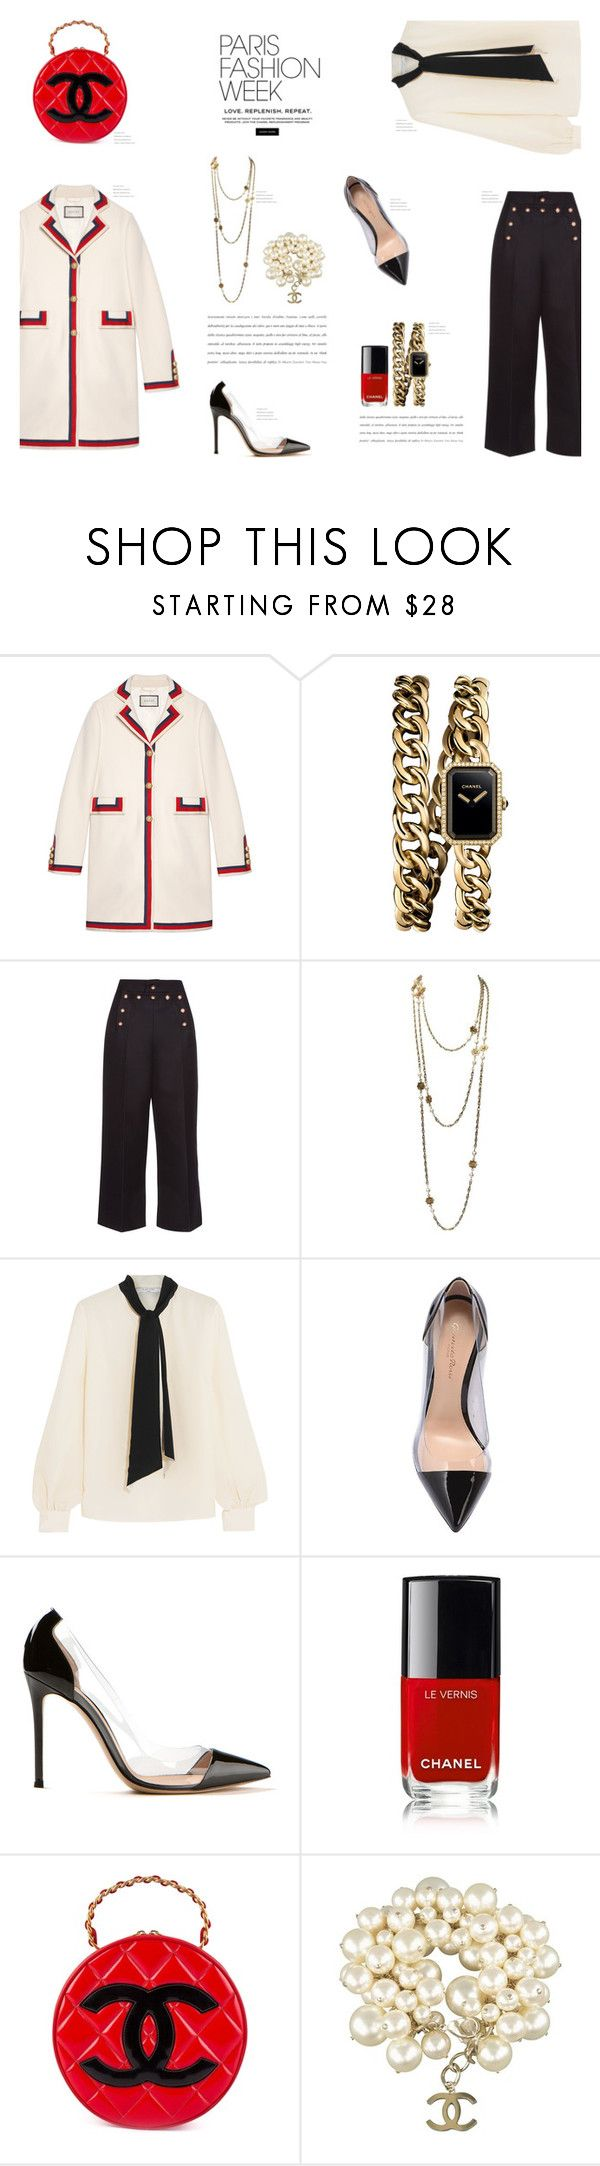 """PARIS Fashion Week"" by canvas-moods ❤ liked on Polyvore featuring Gucci, Chanel, Marc Jacobs, Lanvin, Gianvito Rossi, Elegant, gucci, parisfashionweek and Packandgo"